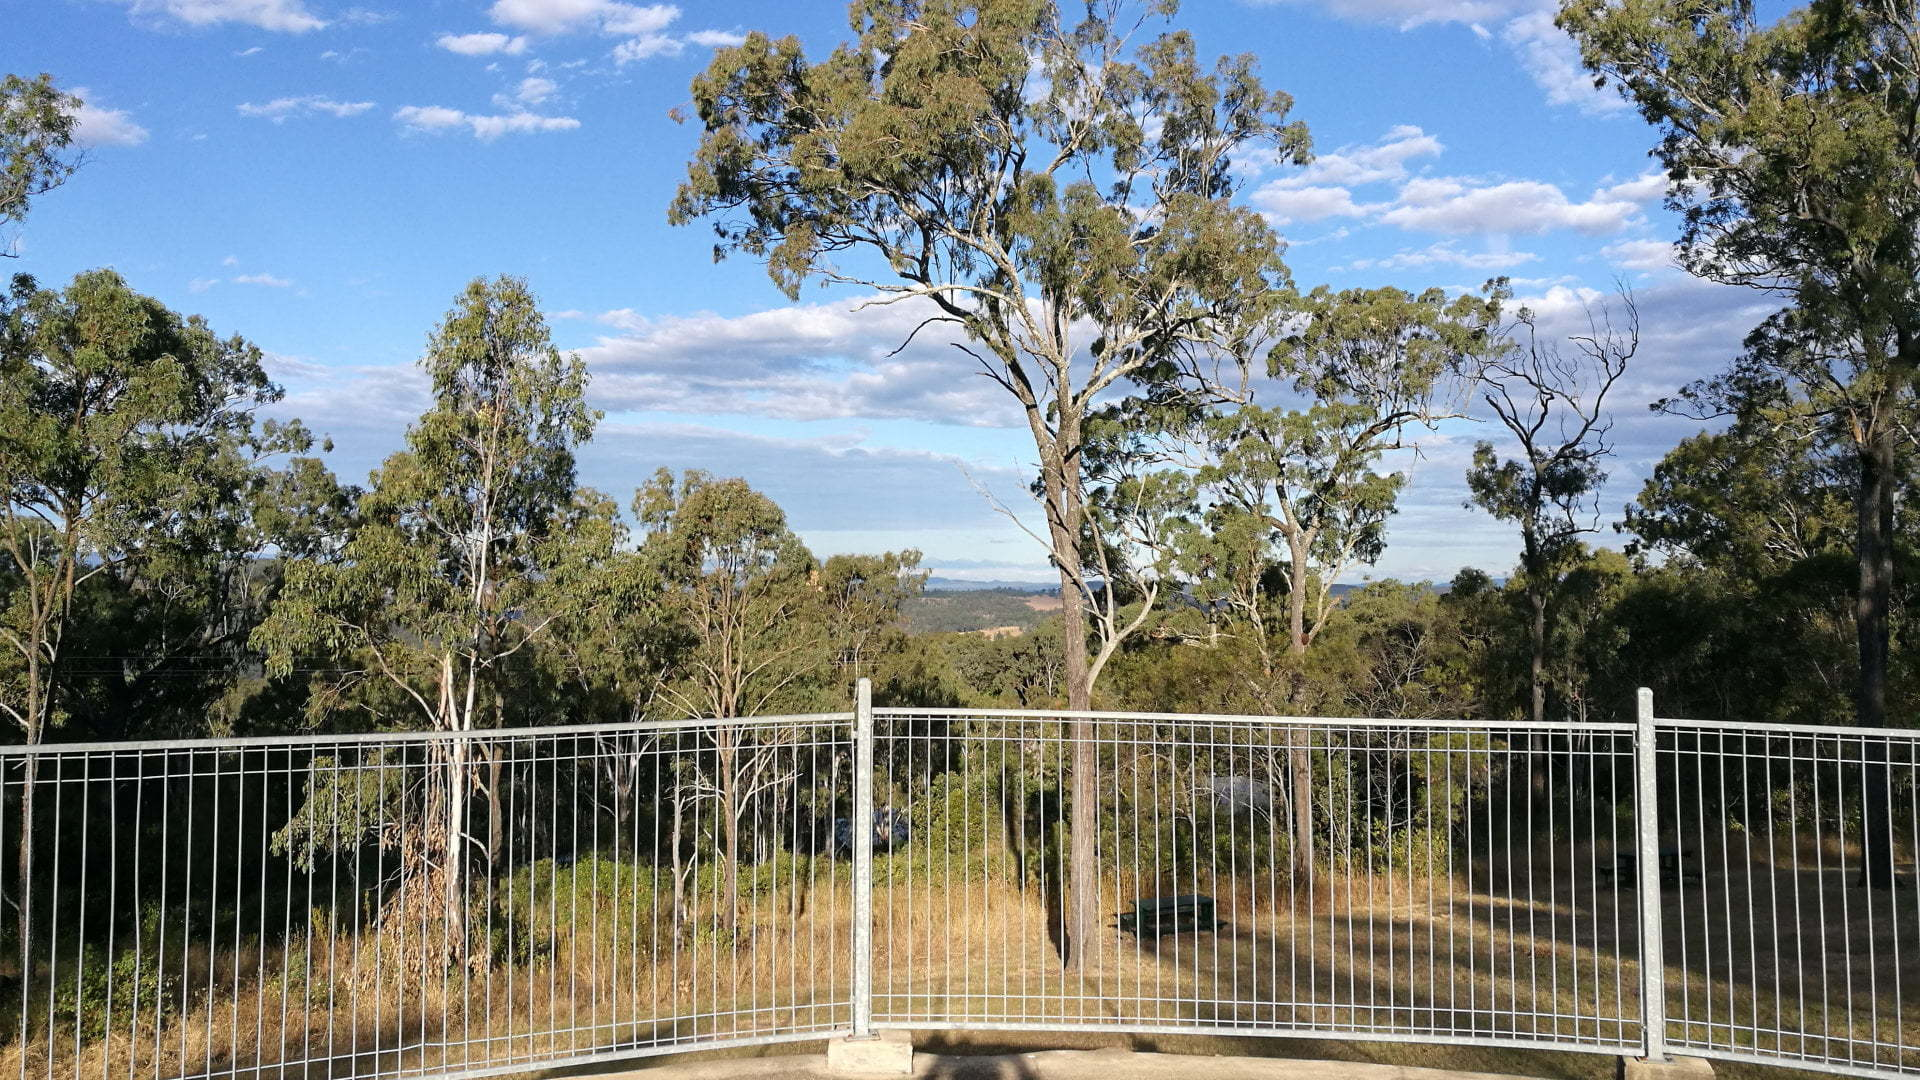 View from Lakeview Park and Lookout on the outskirts of Esk. Views are meant to be over Wivenhoe Dam, however trees have grown to mostly obscure the views.